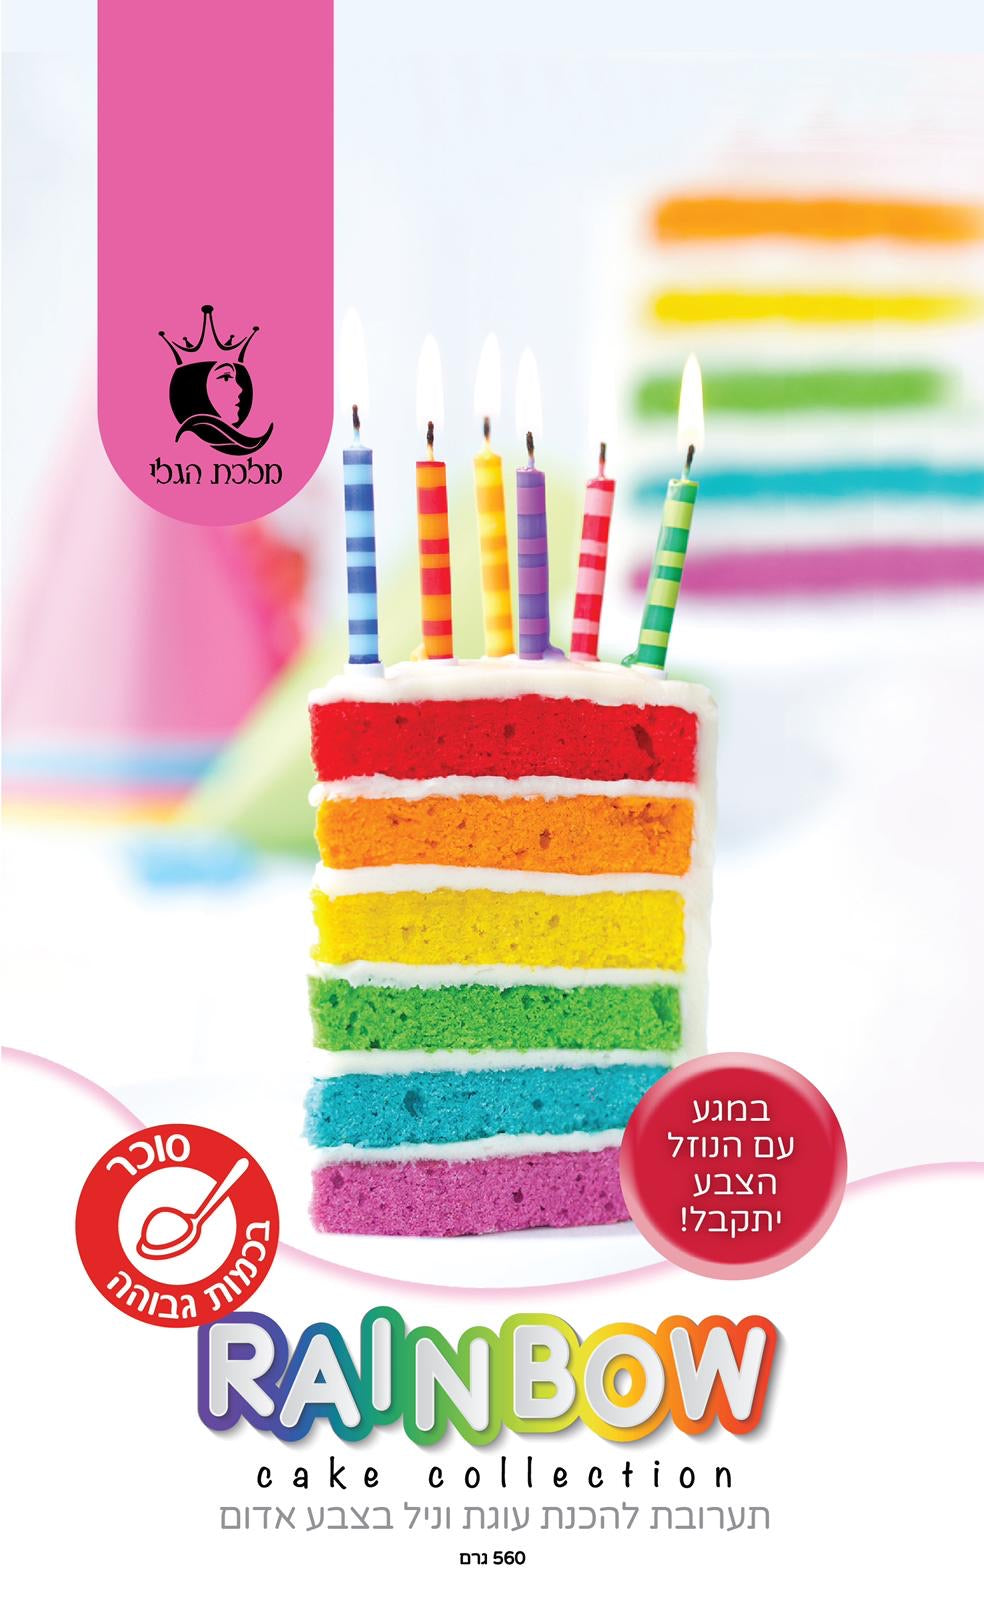 Rainbow Cake collection - אדום